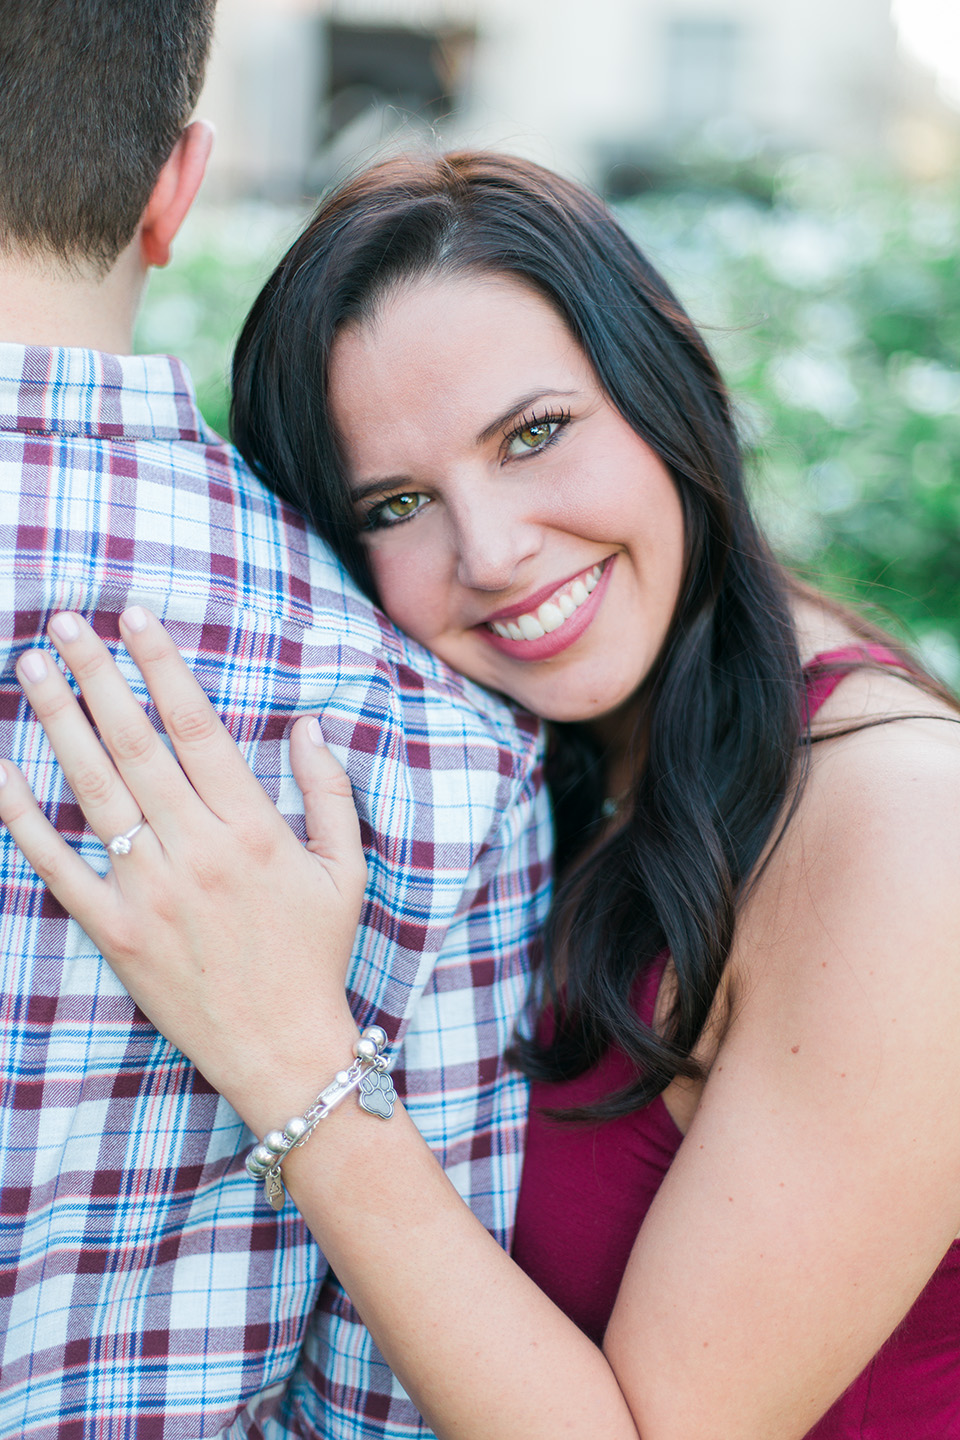 Image of an engaged couple in downtown Orlando, Florida.  She is smiling radiantly while cuddling into her fiance.